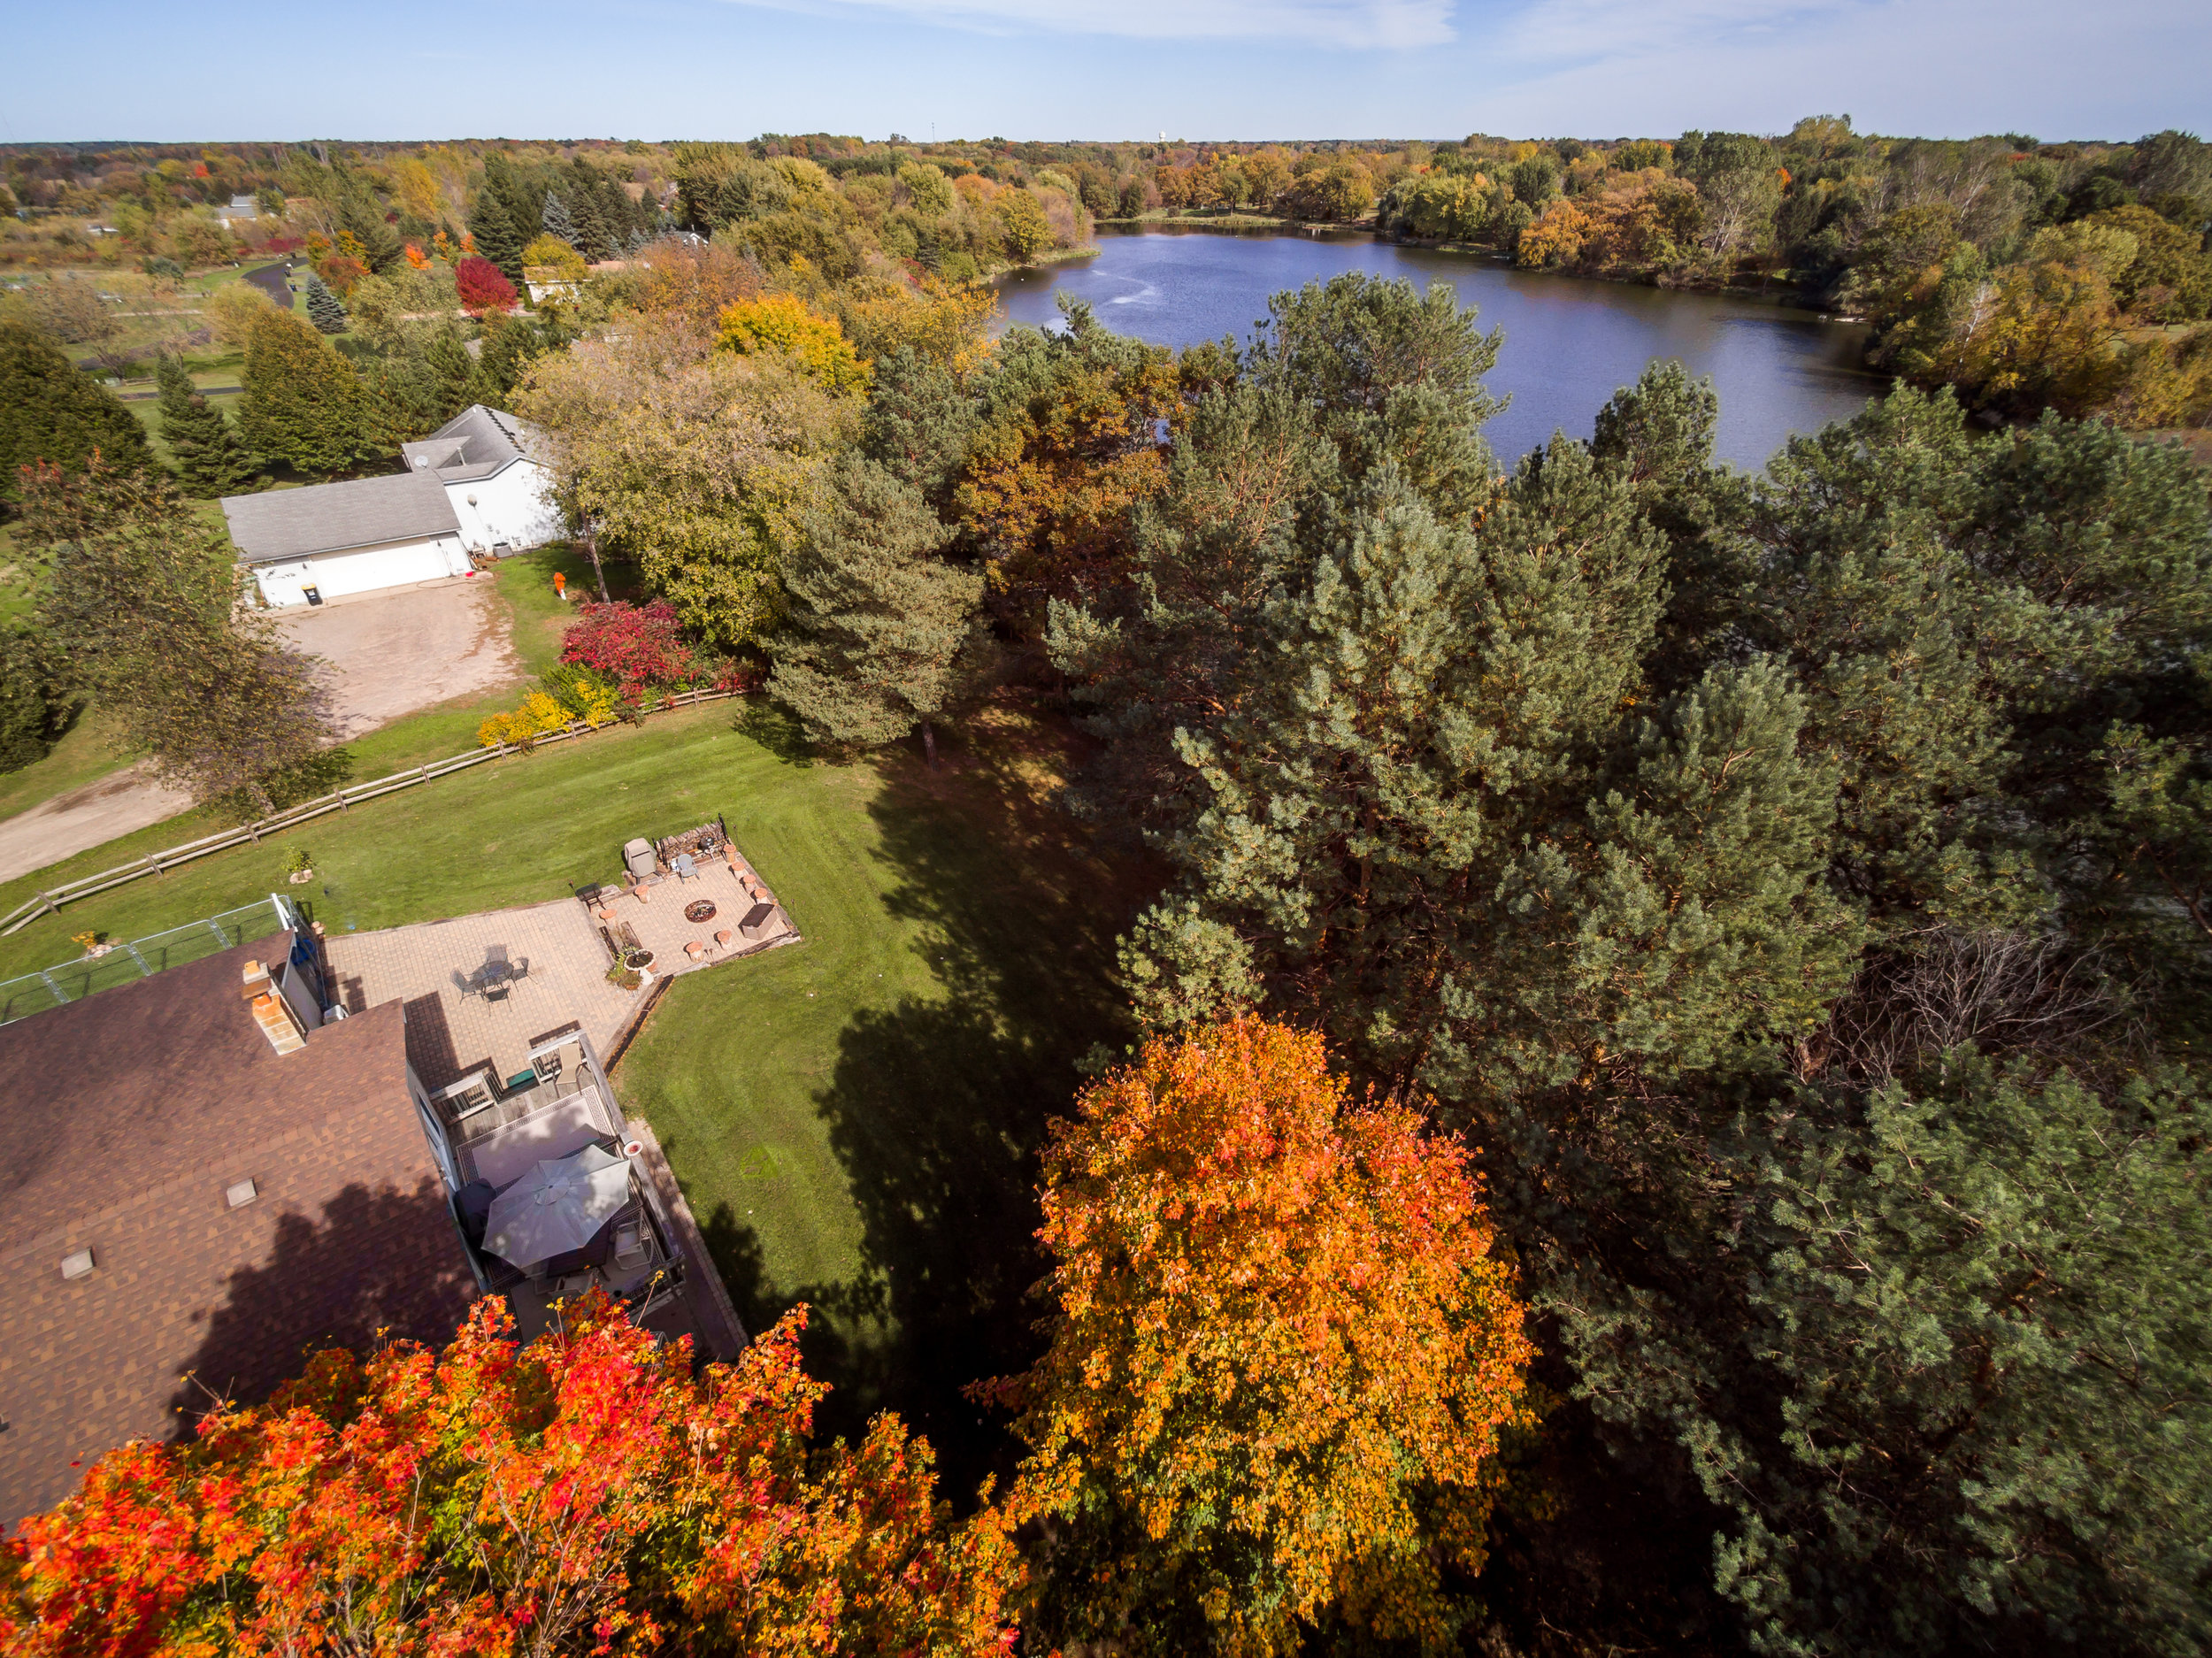 28431-jeffery-avenue-chisago-city-mn-aerial5.jpg